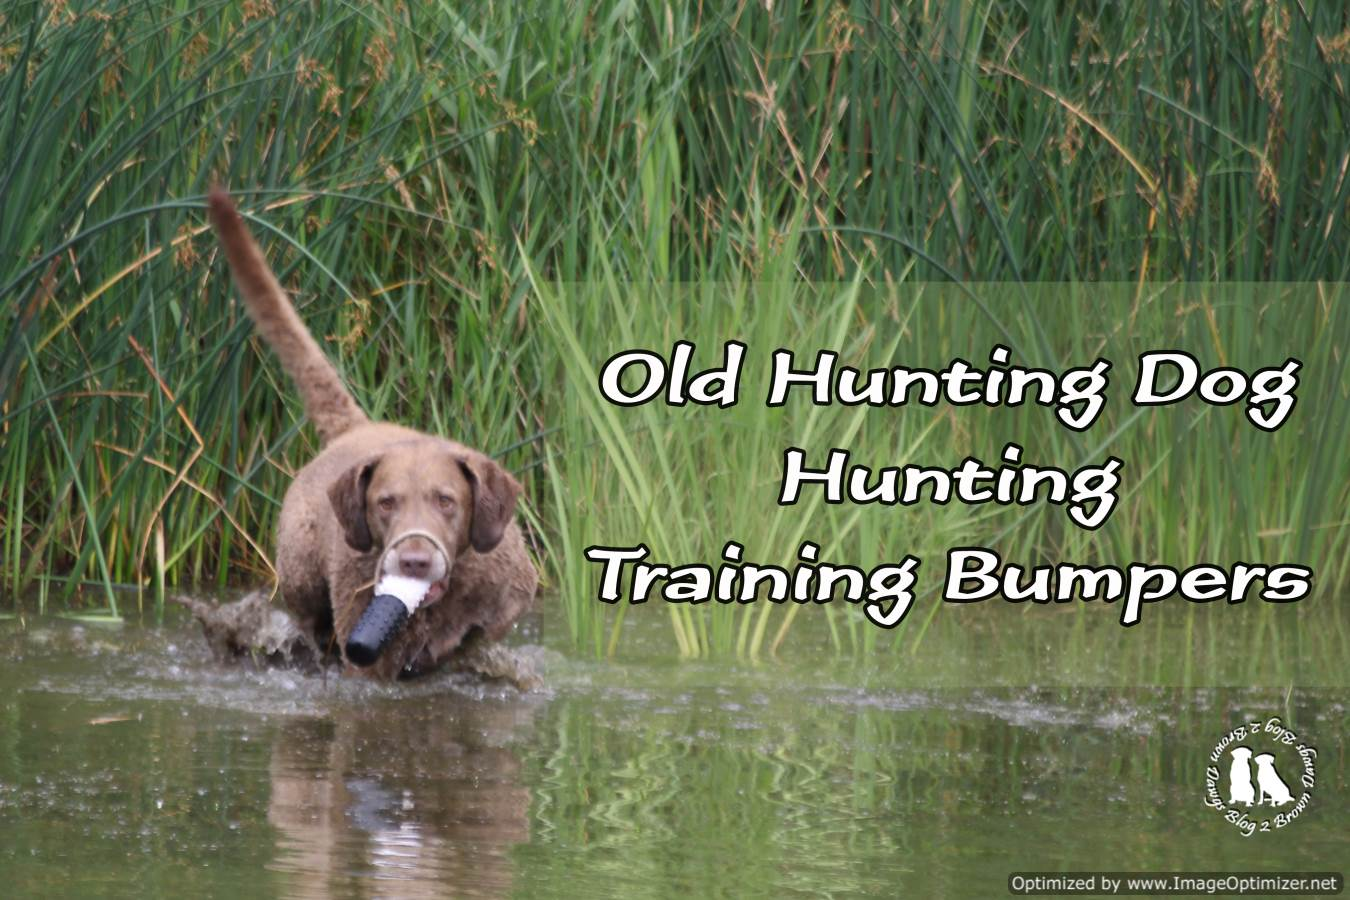 Old Hunting Dog Hunting Training Bumpers